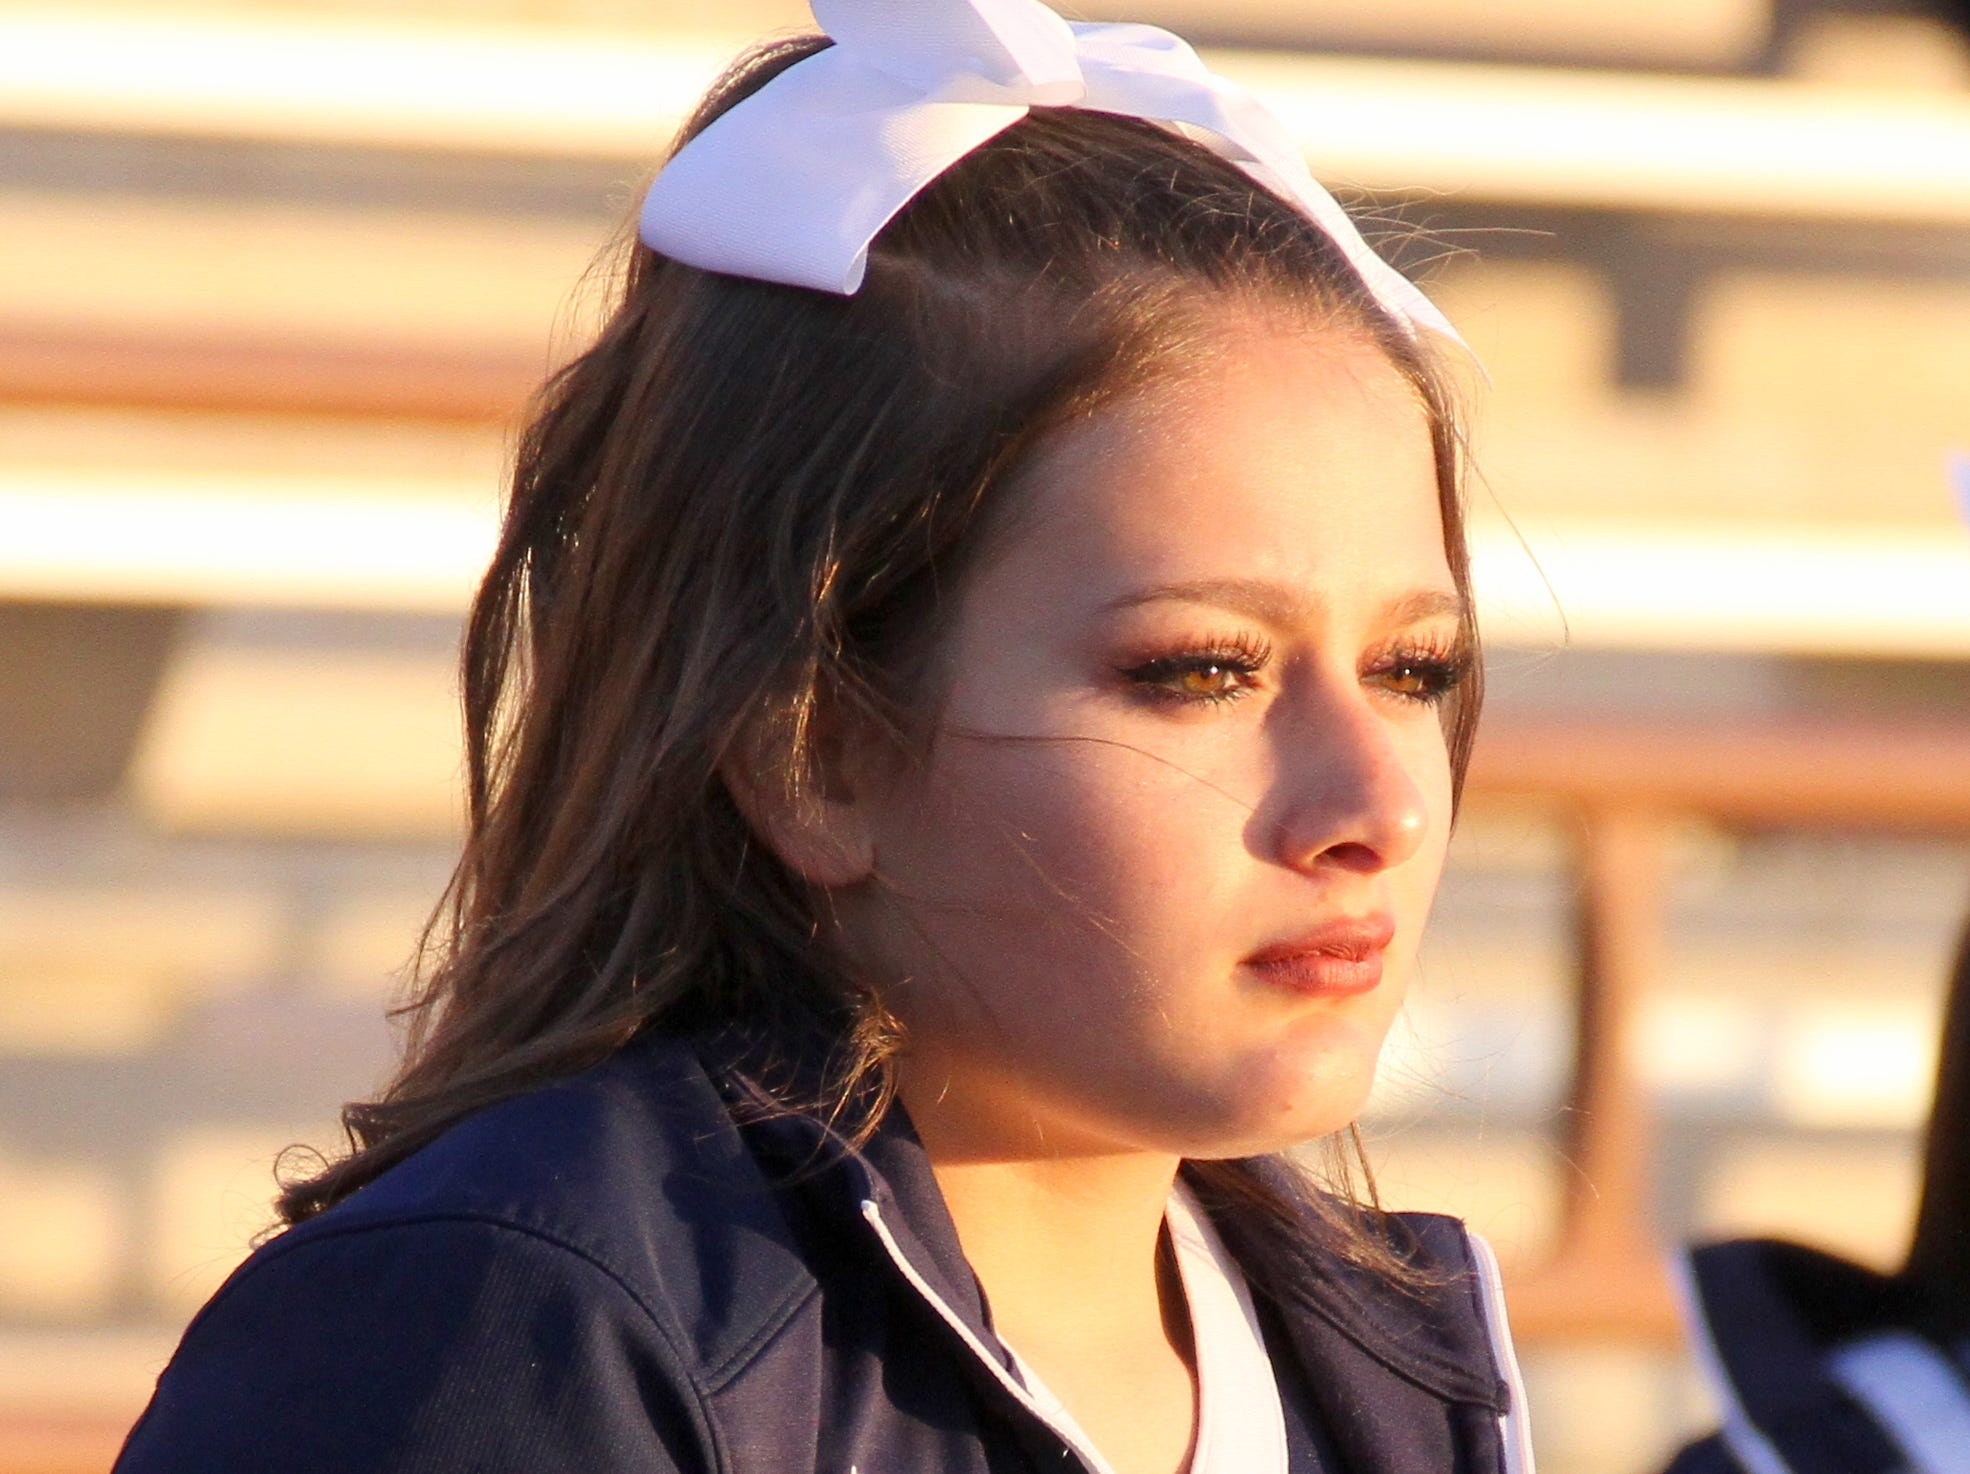 Wildcat cheerleader Ciera Wood is focused on the playoff action between the Goddard High Rockets and the Deming High Wildcats.